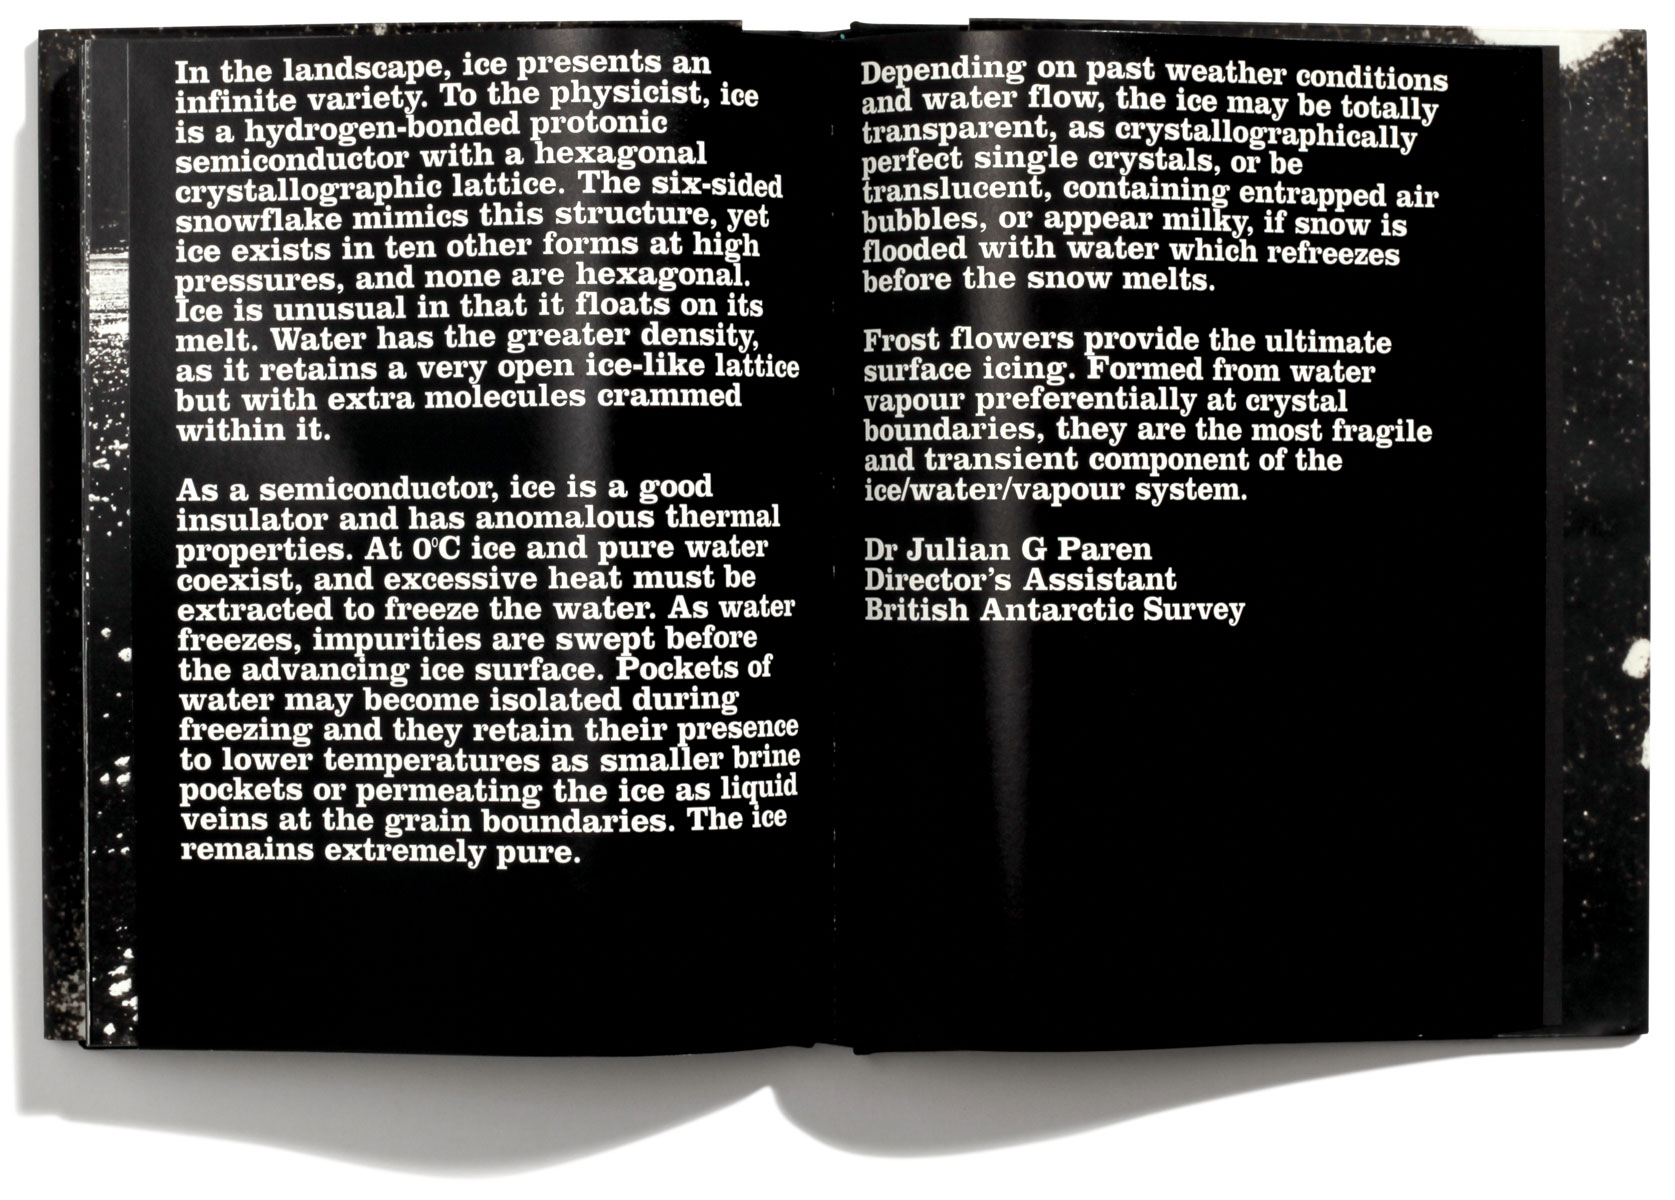 Browns Editions, Browns Editions Publishing, Browns Editions Books, Browns Editions Robin Broadbent, Browns Editions Minus Sixteen, Browns Editions Robin Broadbent Minus Sixteen